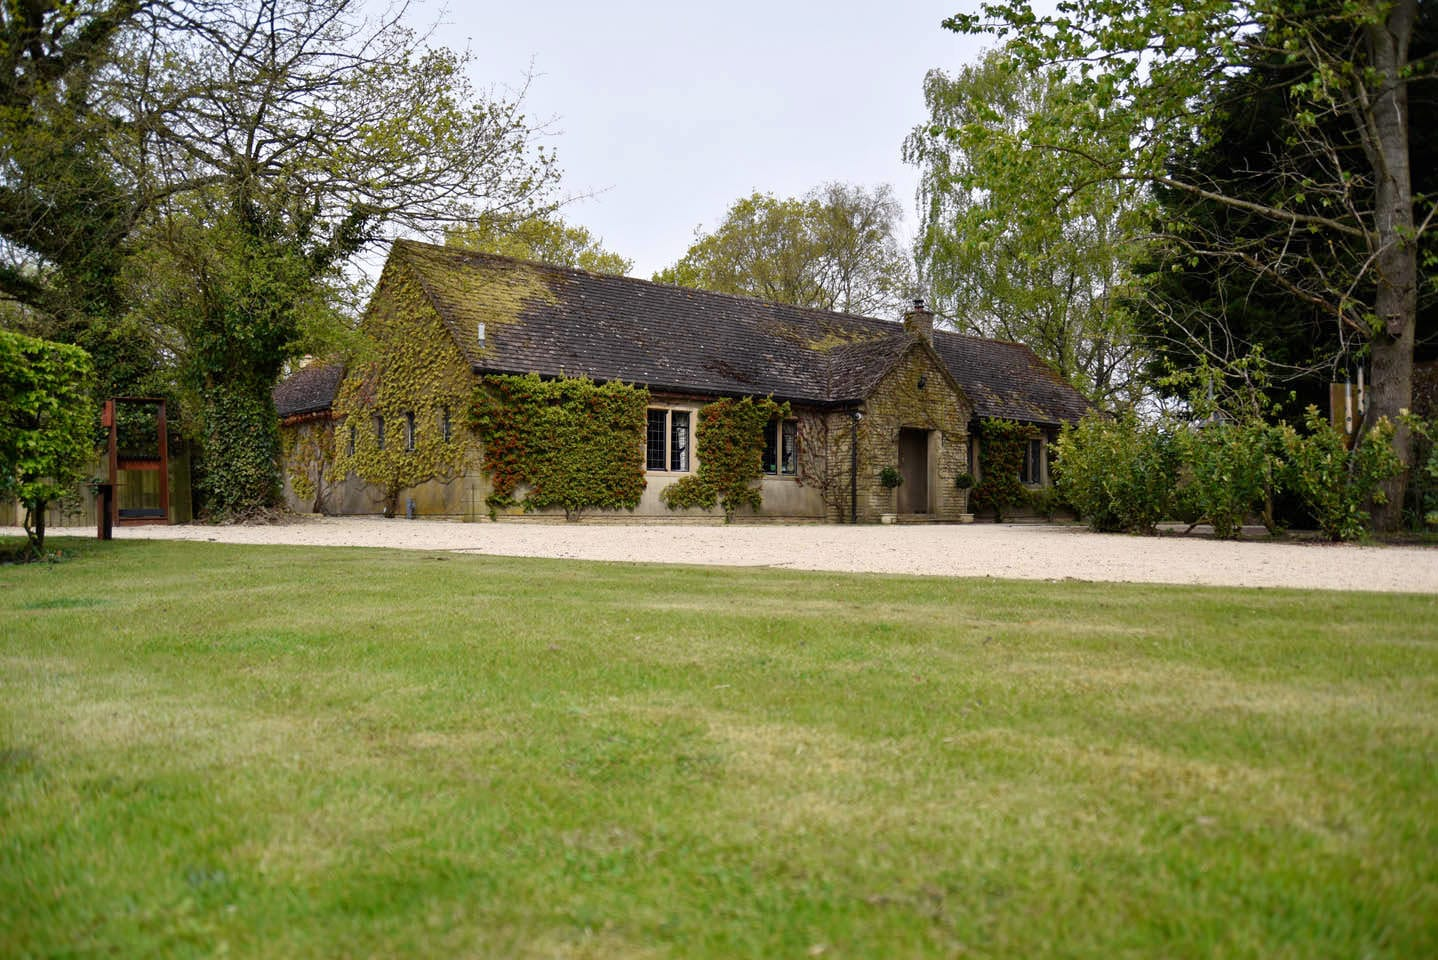 The house and grounds of Lady's Wood Shooting School